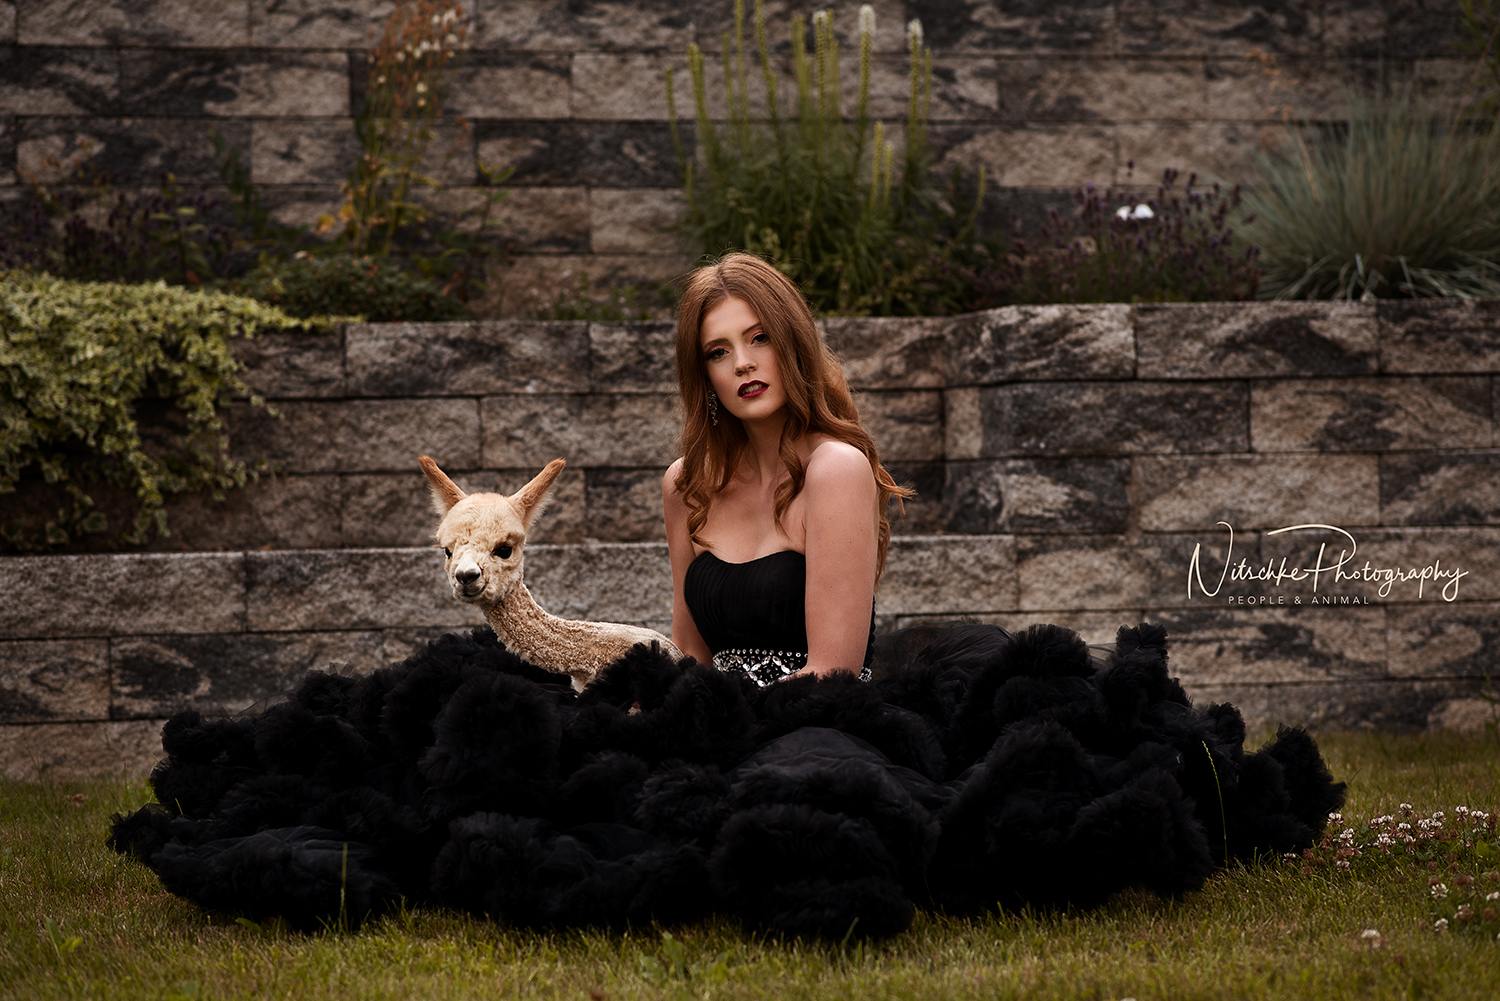 Anne Nitschke Photography People Animal Photography romantic dreamy emotional fairy-tale creative elegant photo shoot Nikon D750 Photoshop Photo Retouching Zürich Switzerland emphatic therapy luxury unique experience once in a lifetime experience princess dress portrait photography animal photography animal therapy art therapy Alpacas photo shoot Jessica Yen Nhi Nguyen Animal Magic 2018